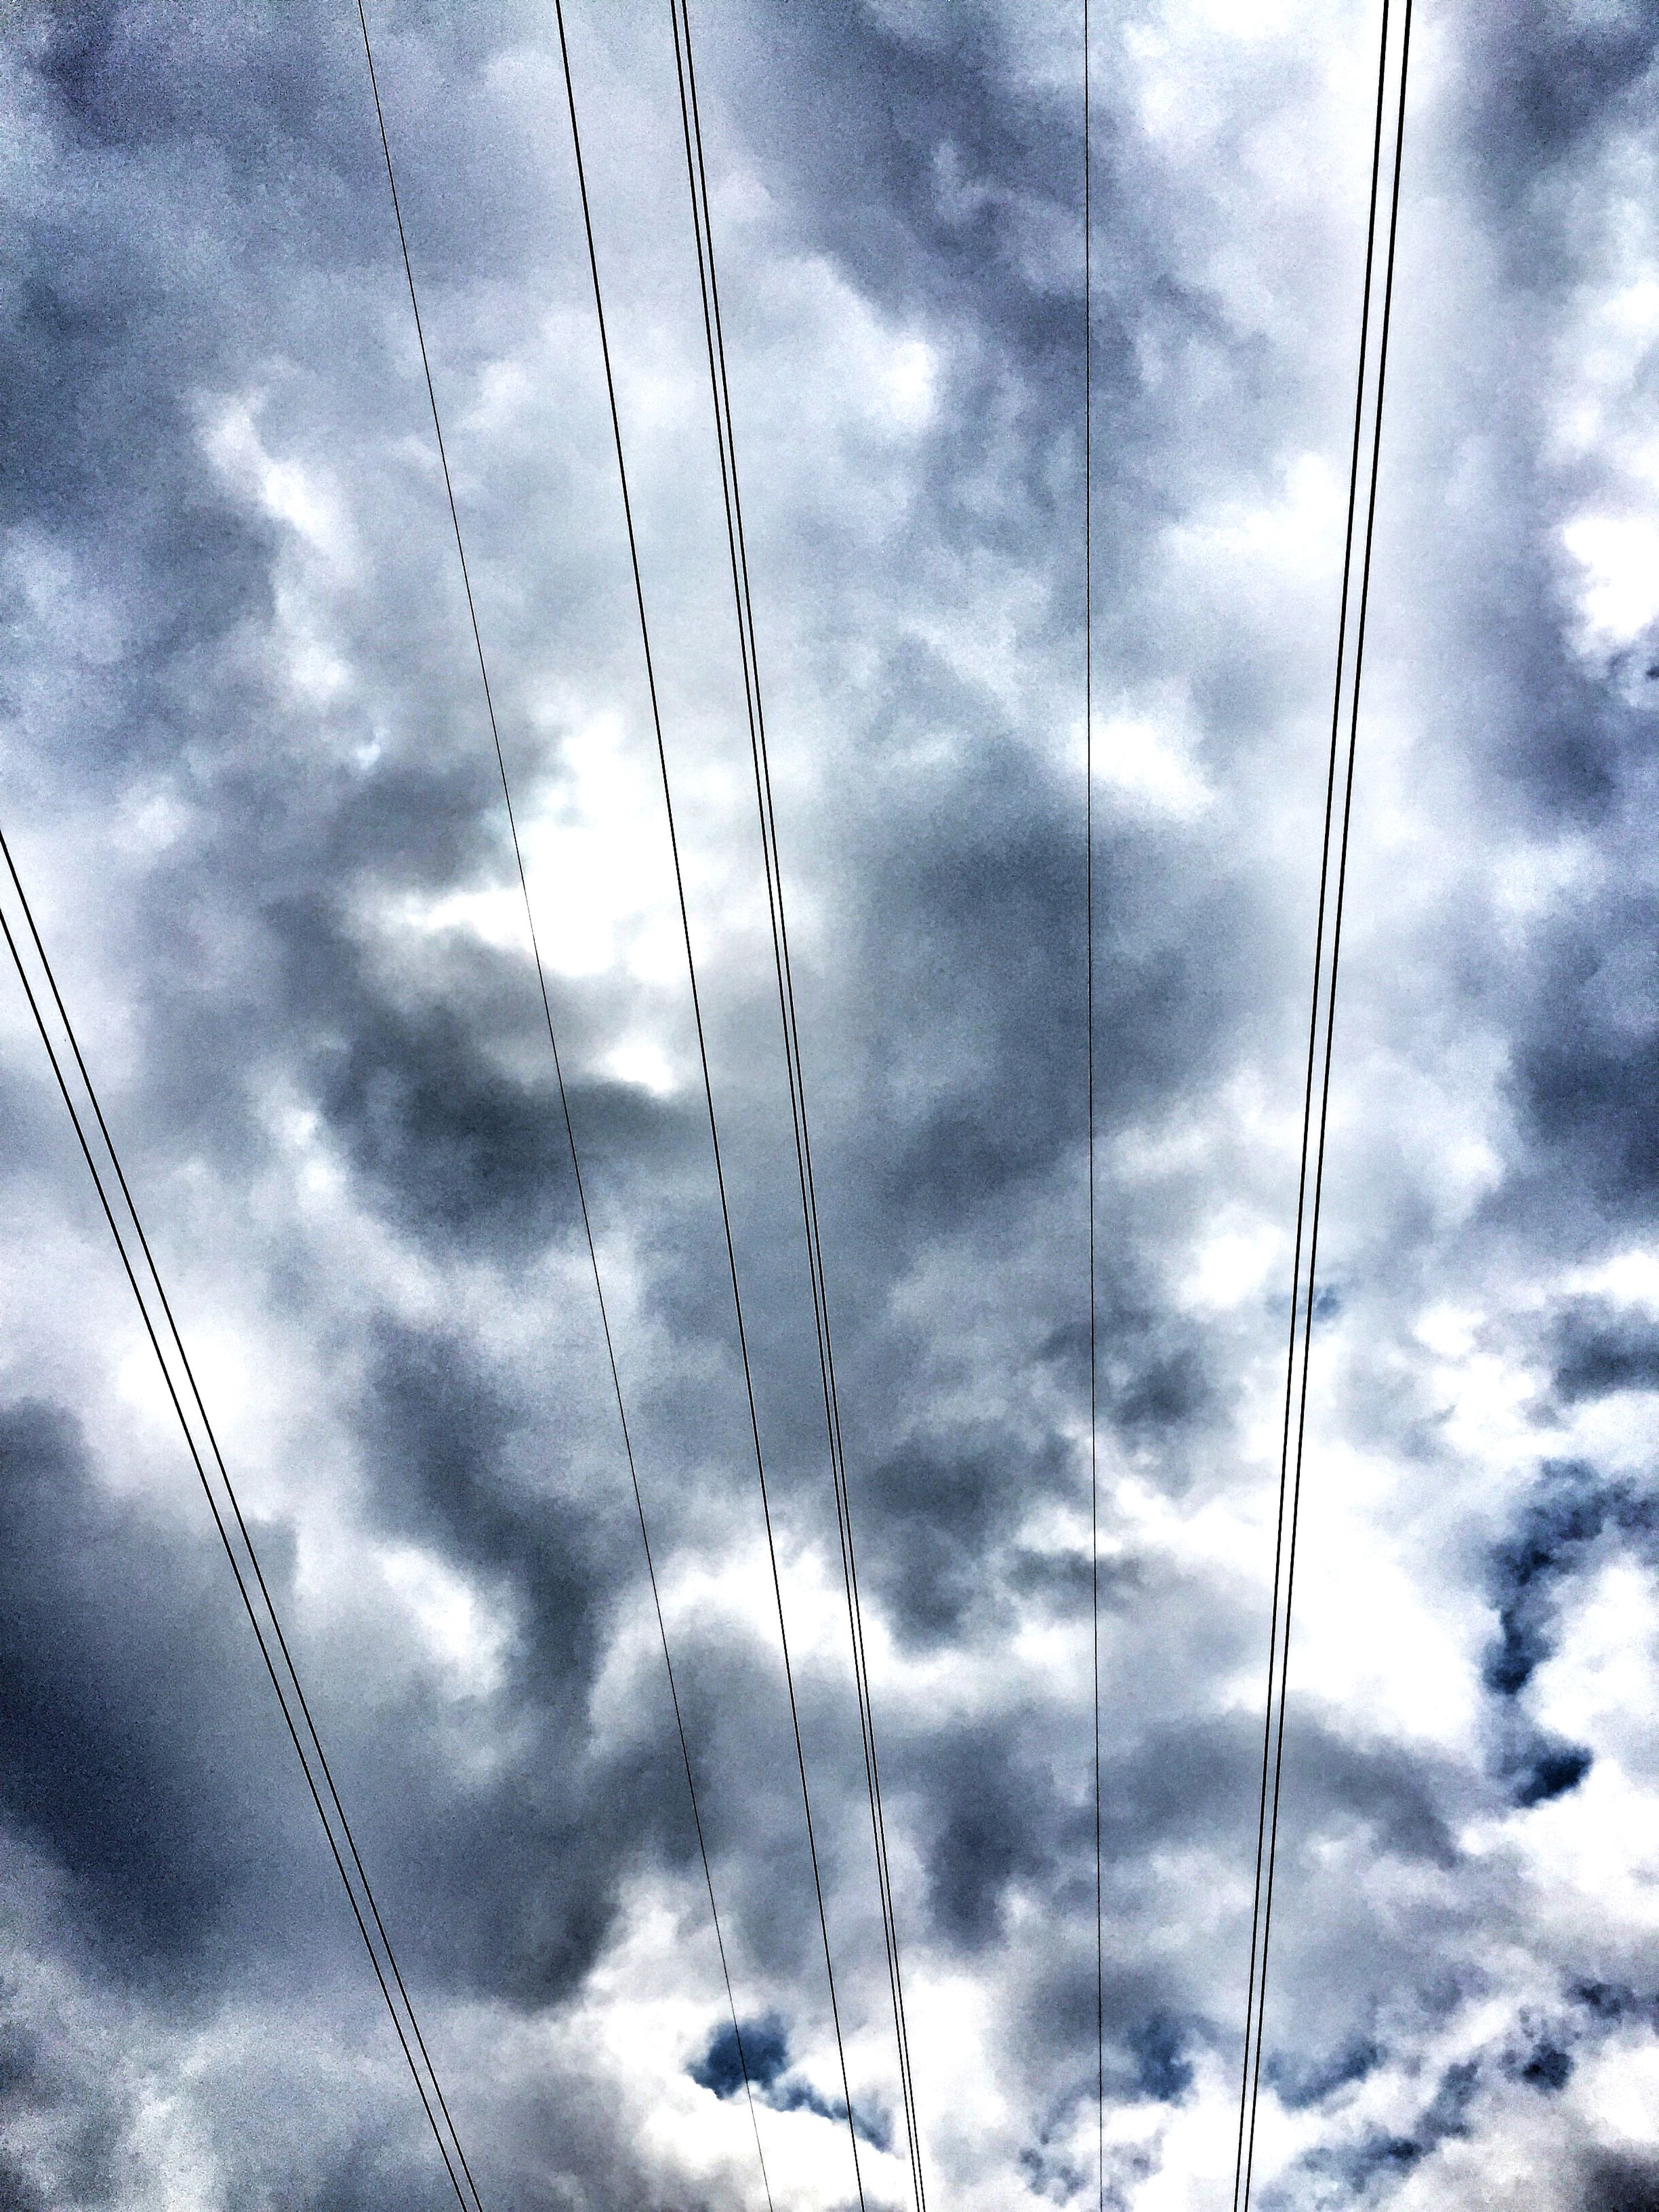 sky, low angle view, cloud - sky, cloudy, power line, cable, electricity, connection, cloud, power supply, electricity pylon, technology, weather, fuel and power generation, overcast, day, outdoors, no people, power cable, nature